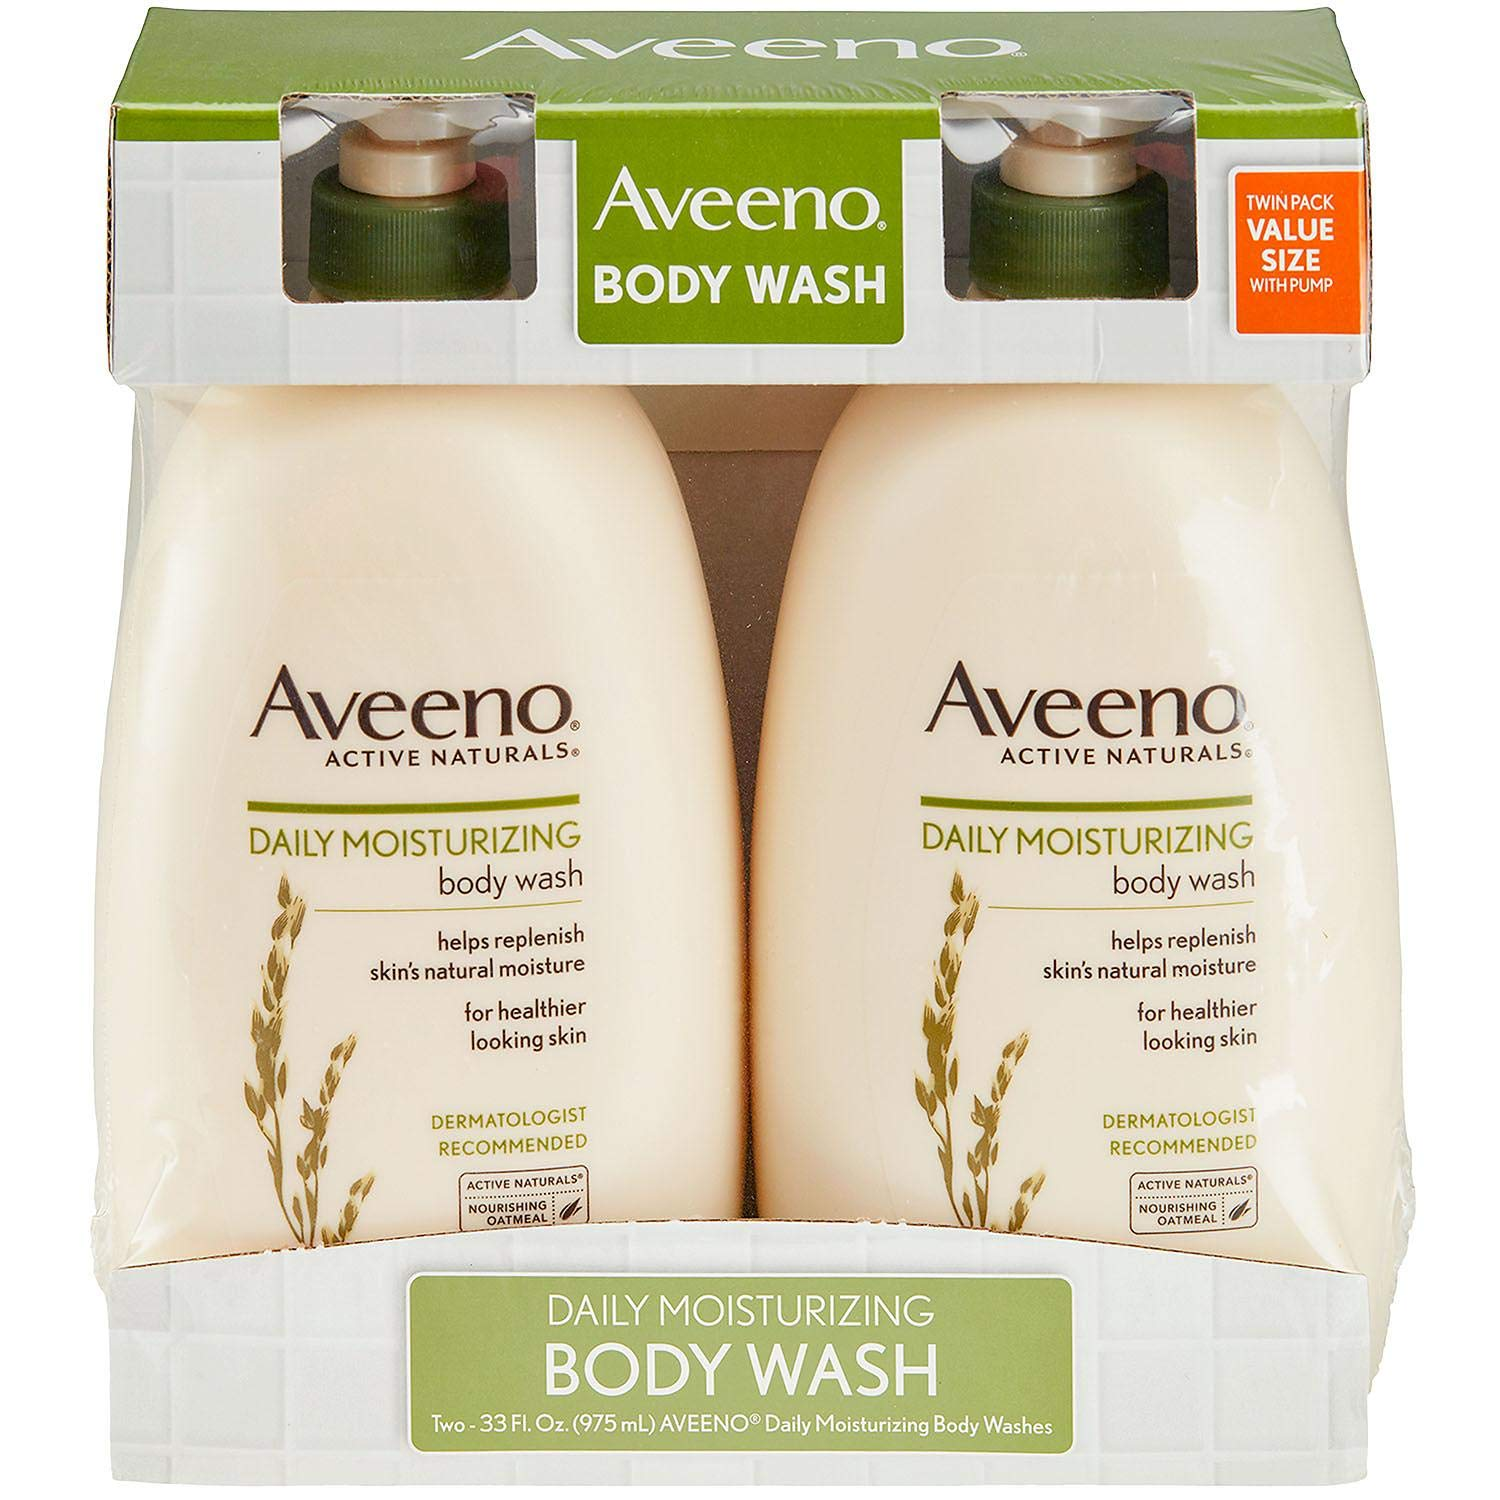 Aveeno Active Naturals Body Wash - Daily Moisturizing - Net Wt. 33 FL OZ (975 mL) Per Bottle - Pack of 2 Bottles by Aveeno